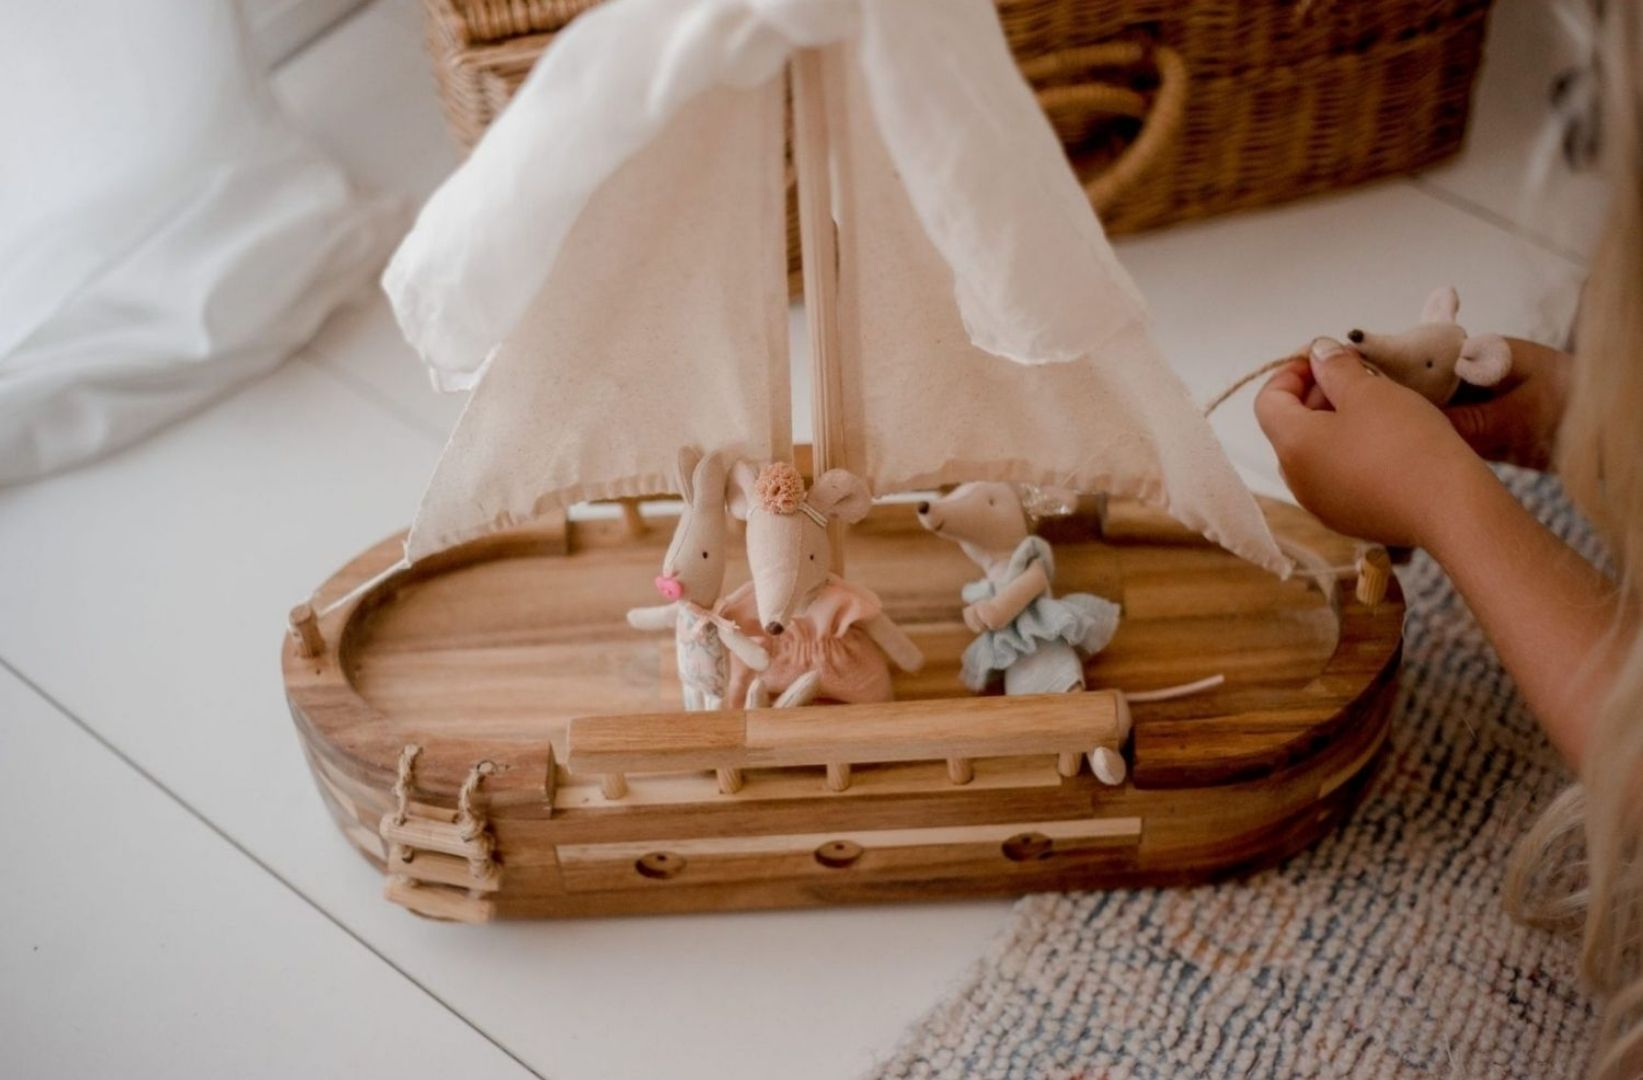 Non toxic wooden ship toy with soft toys aboard